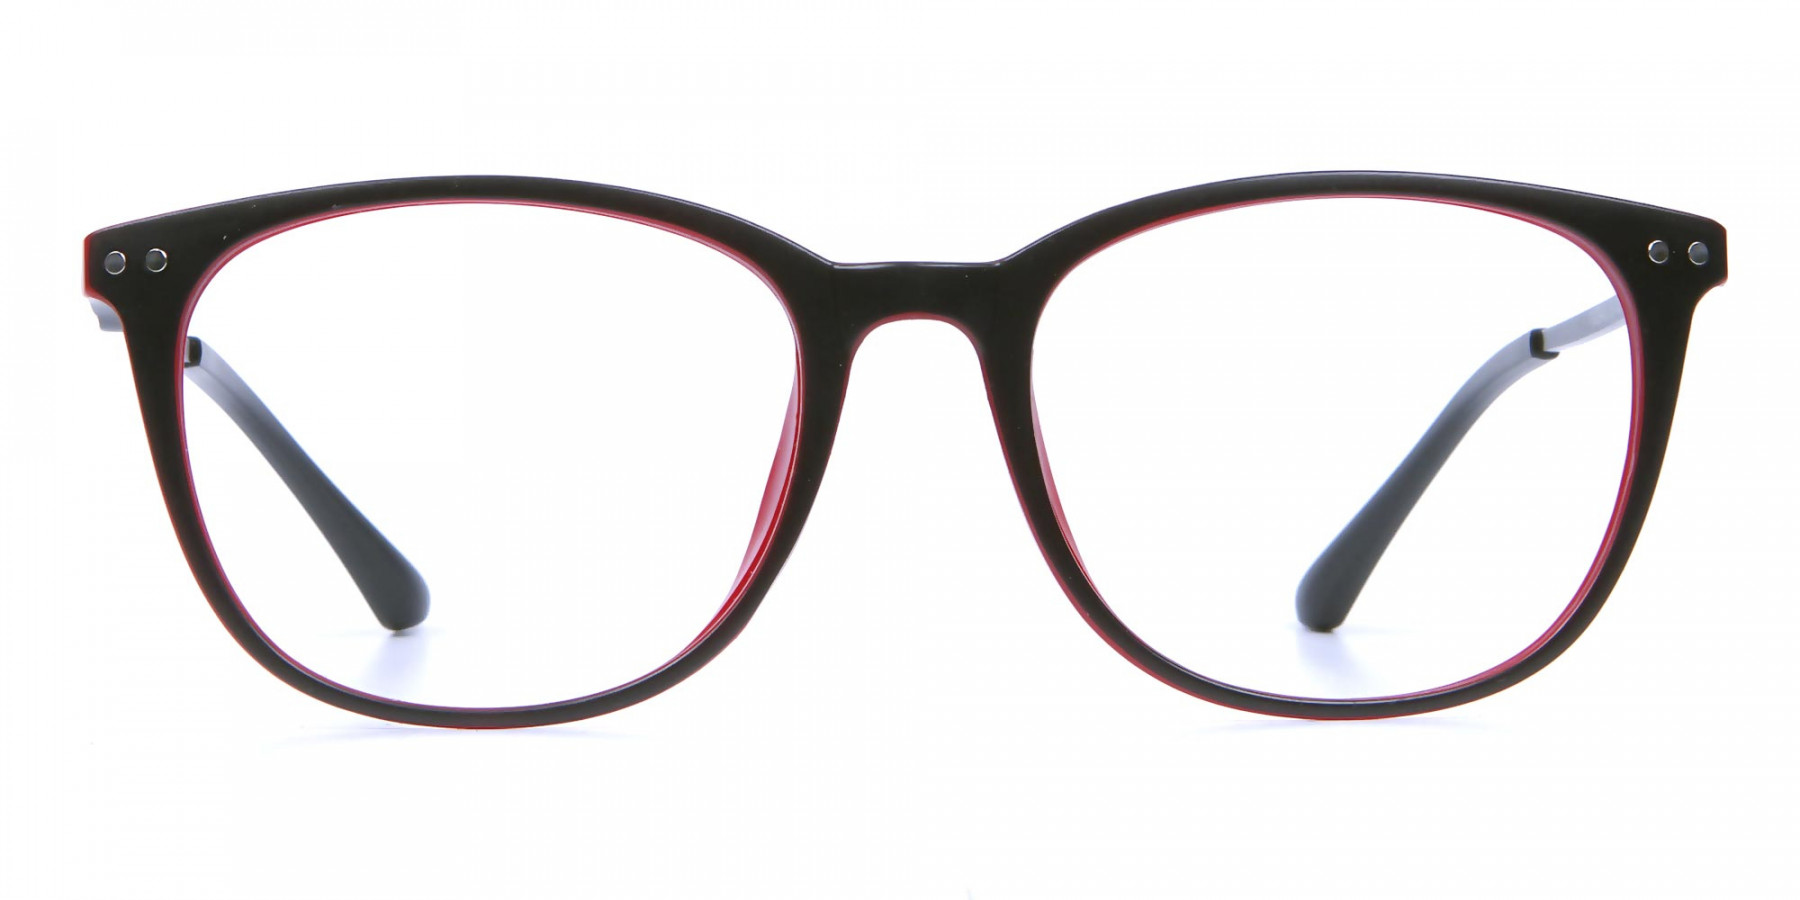 Black & Red Round Glasses, Eyeglasses